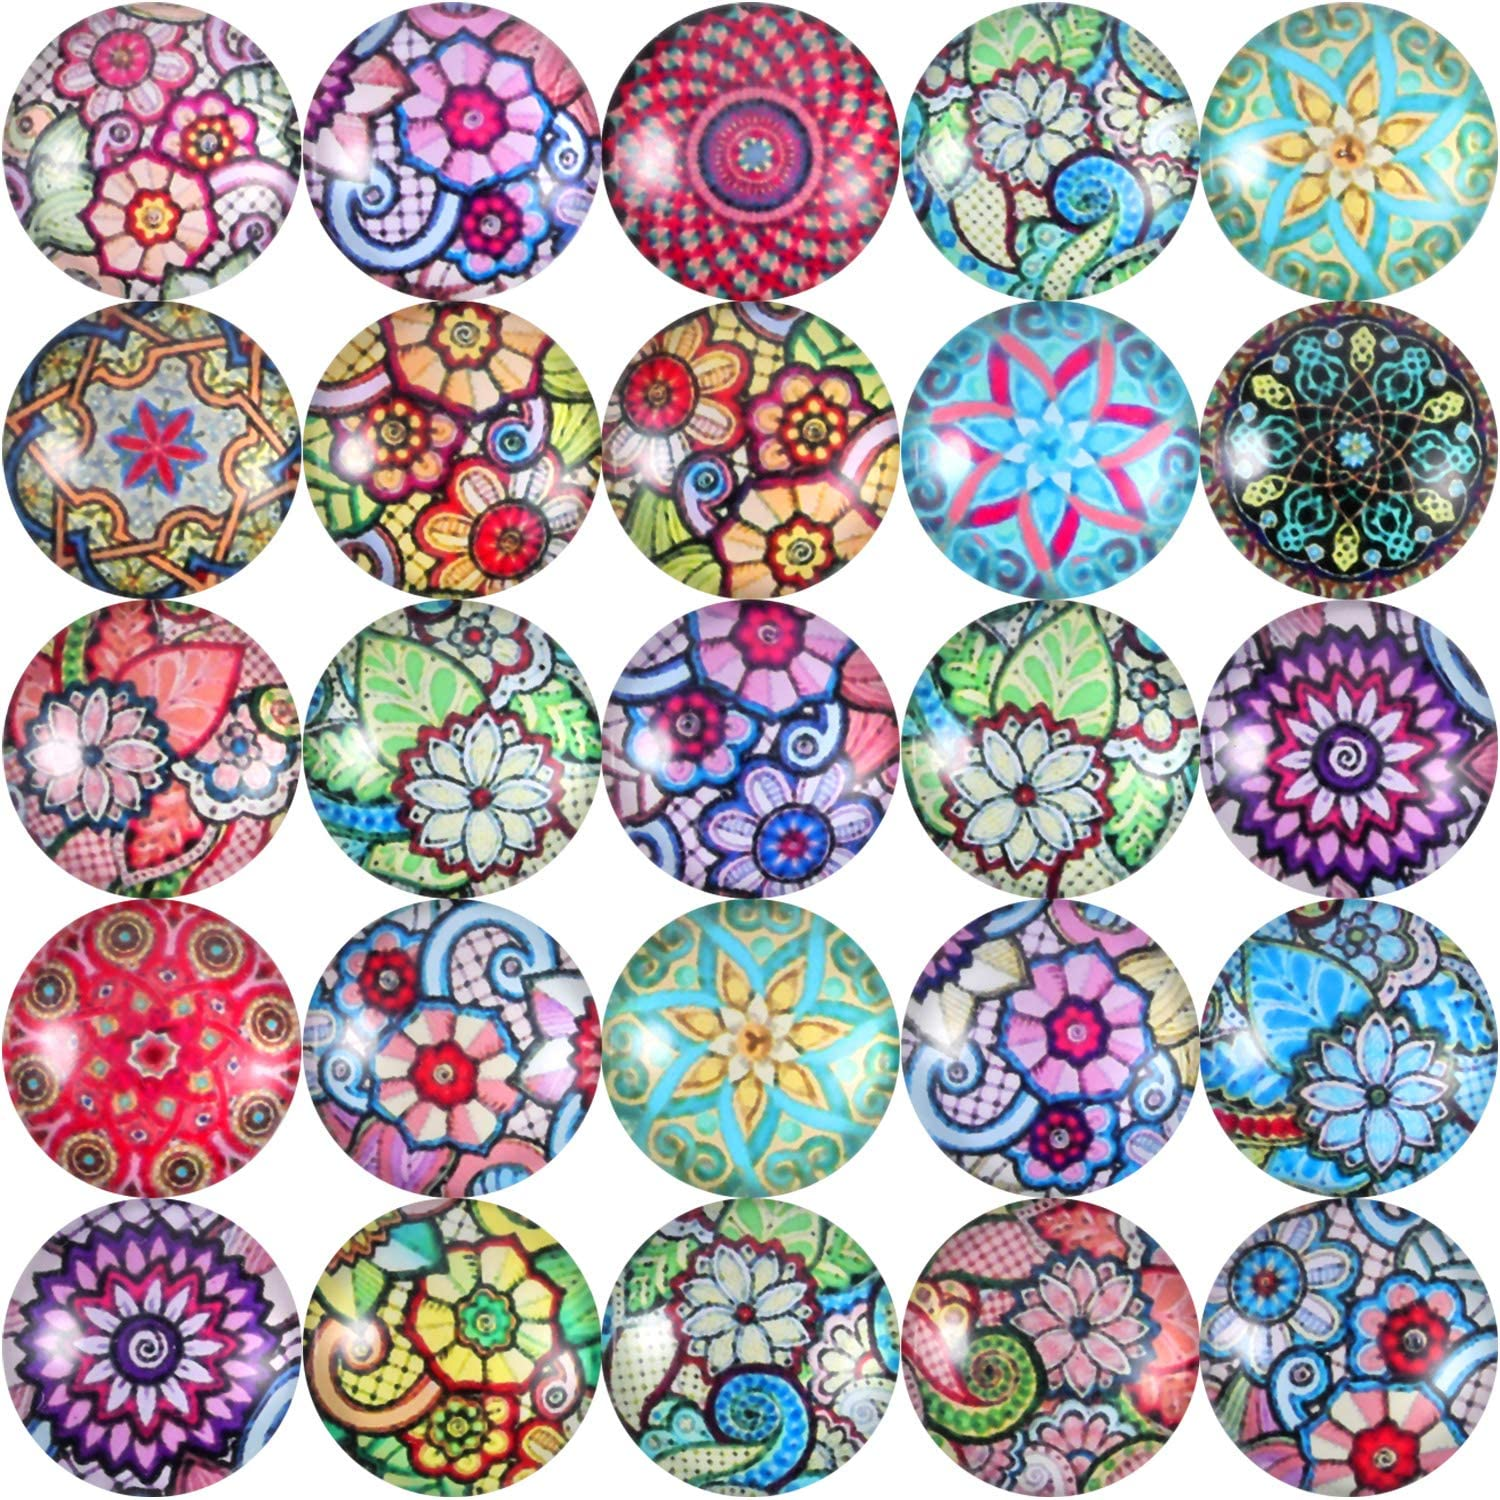 Jewelry Making Kit 0.47 in, 200 Pieces Glass Dome Cabochon Mosaic Tiles